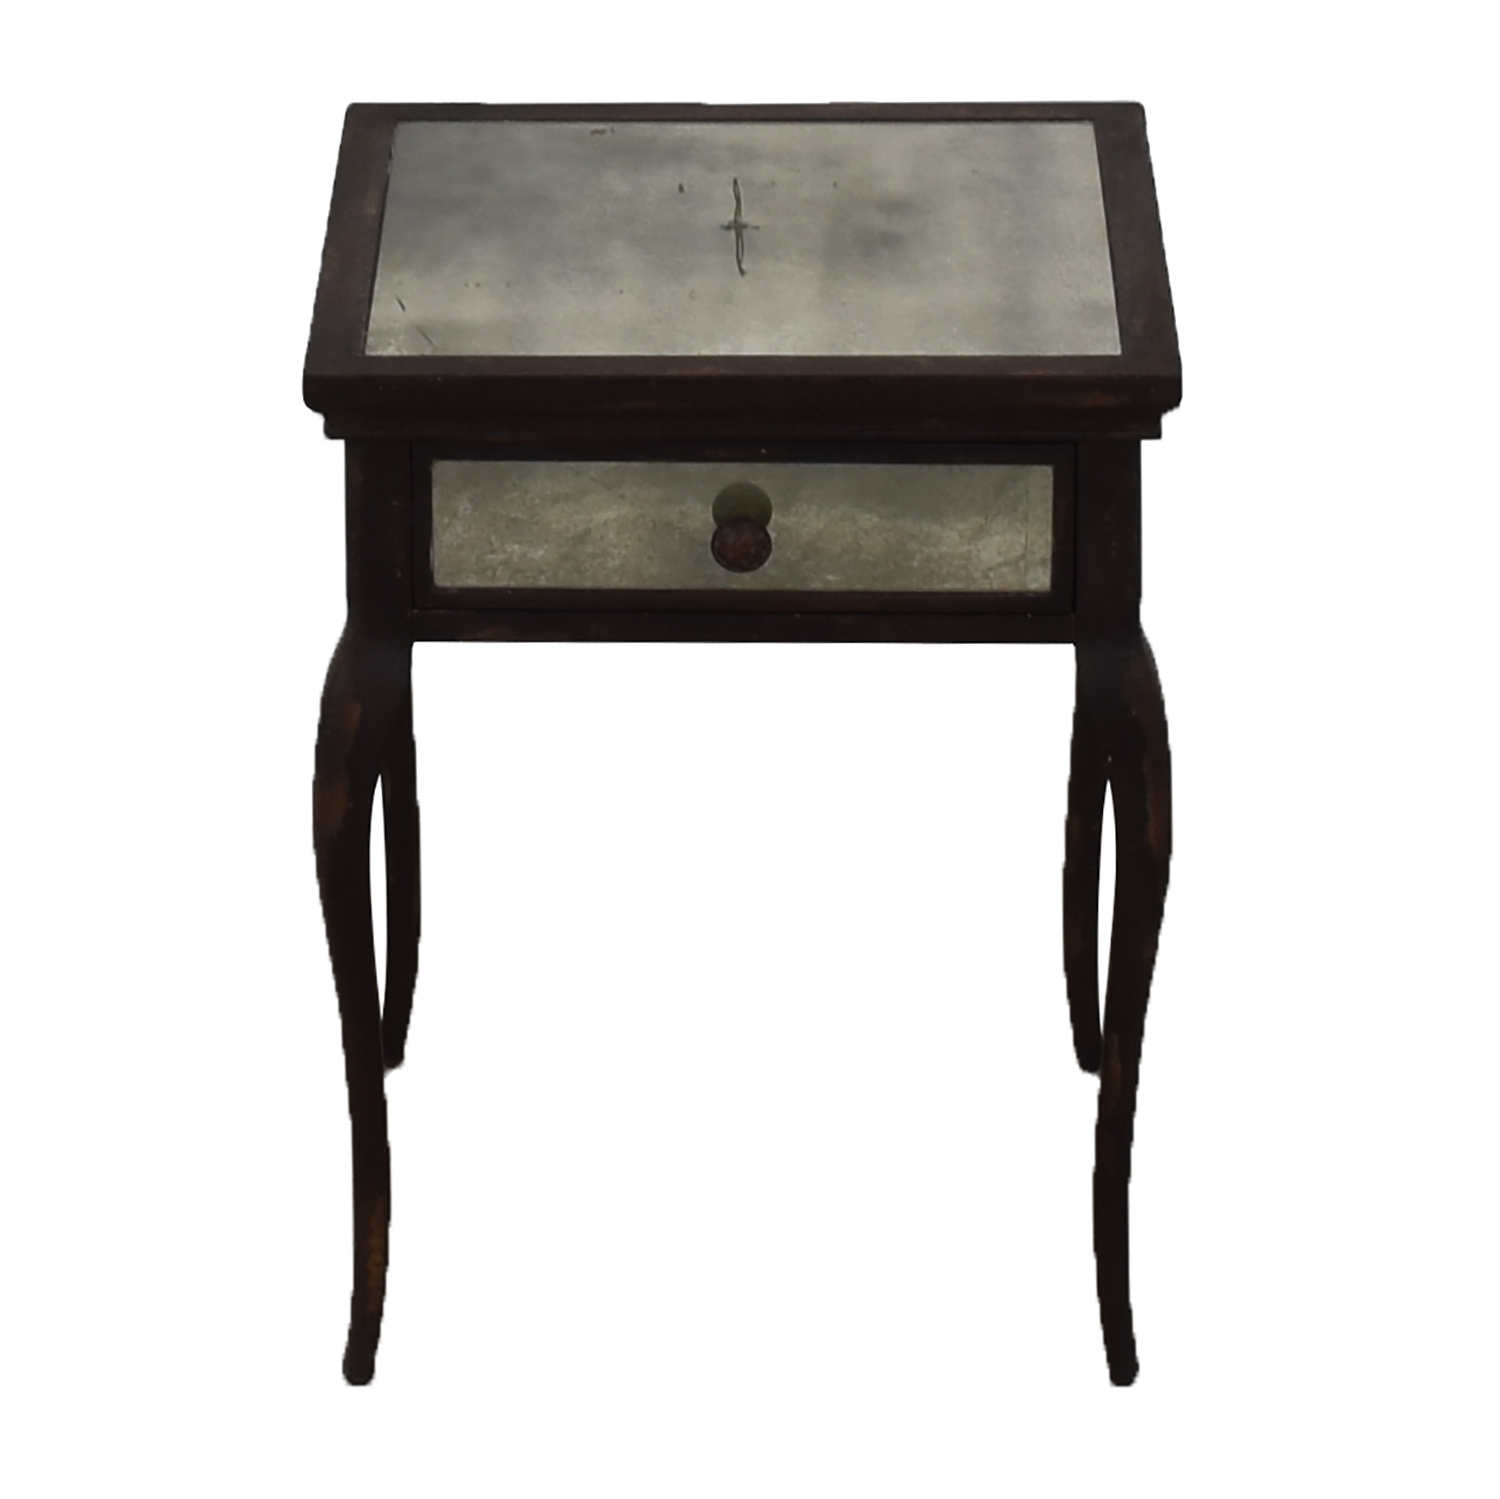 Uttermost Uttermost Smoked Mirror and Metal End Table with One Drawer nyc